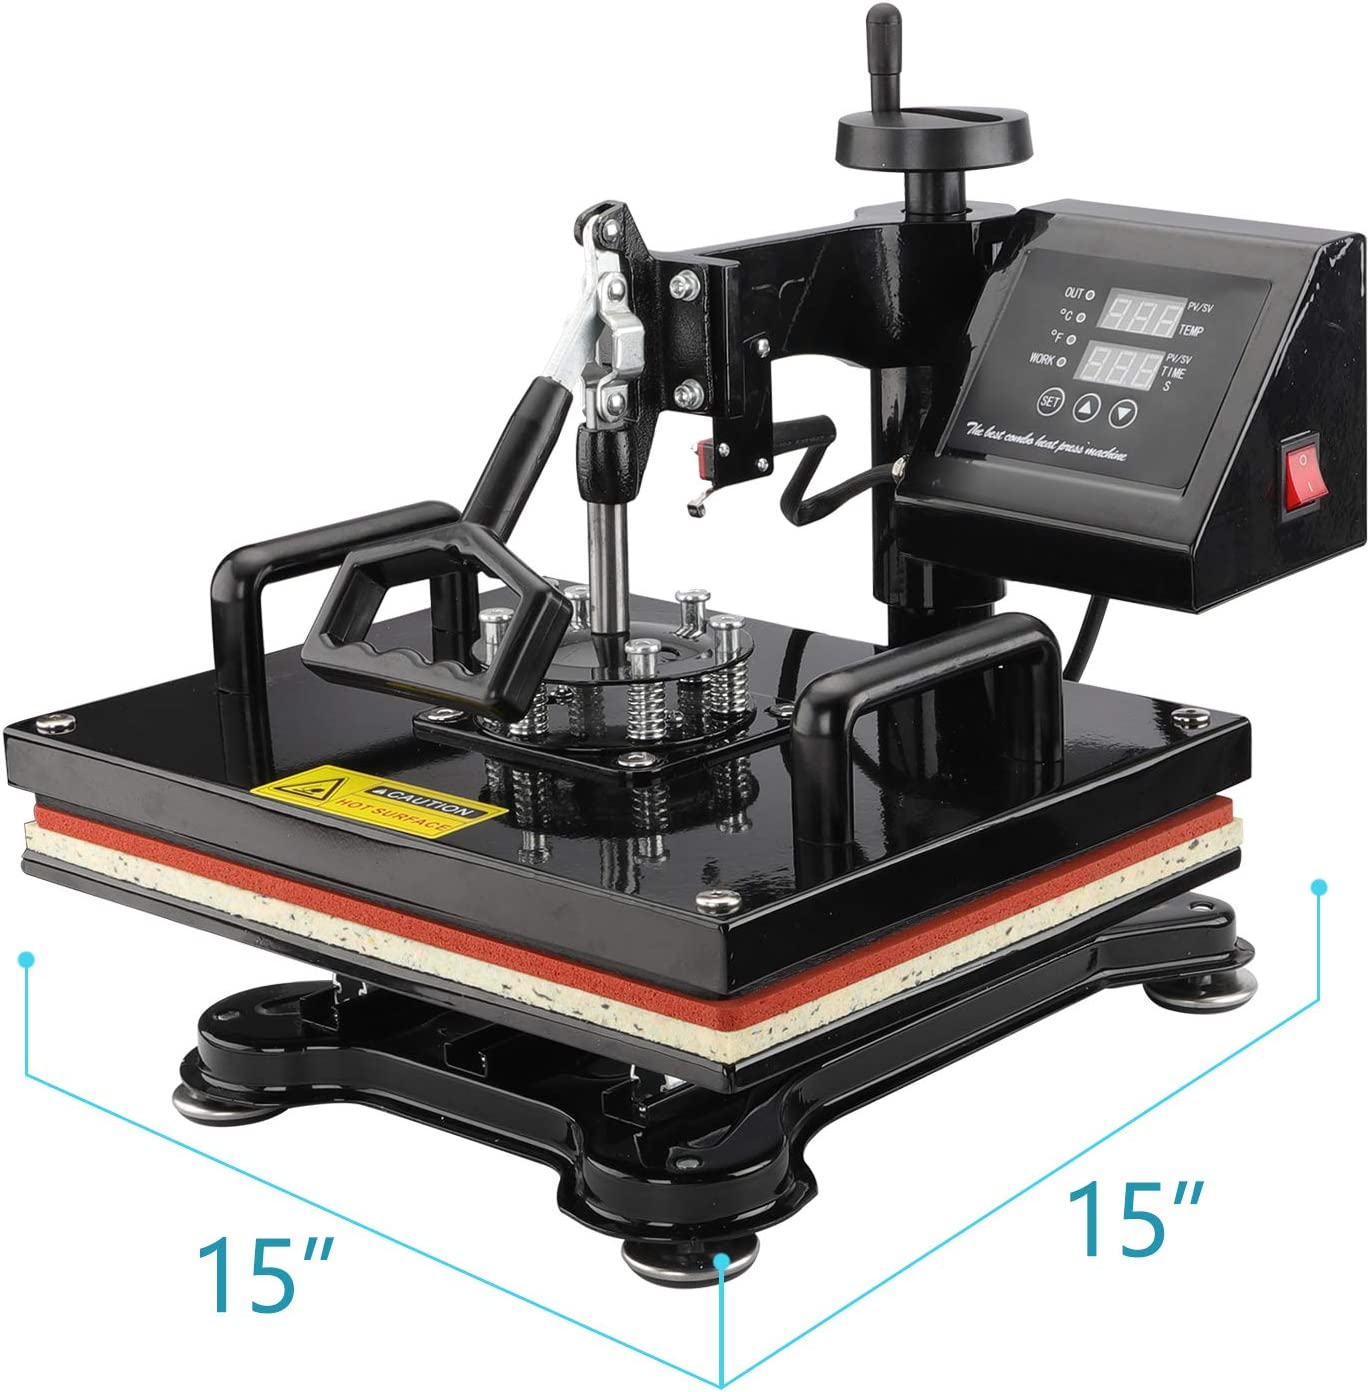 Plate Press Furgle Heat Press Machine 12x15 inch 5 in 1 T-Shirt Digital Printing Transfer Sublimation Machine 1050W with Clothes Hat//Cap Mug